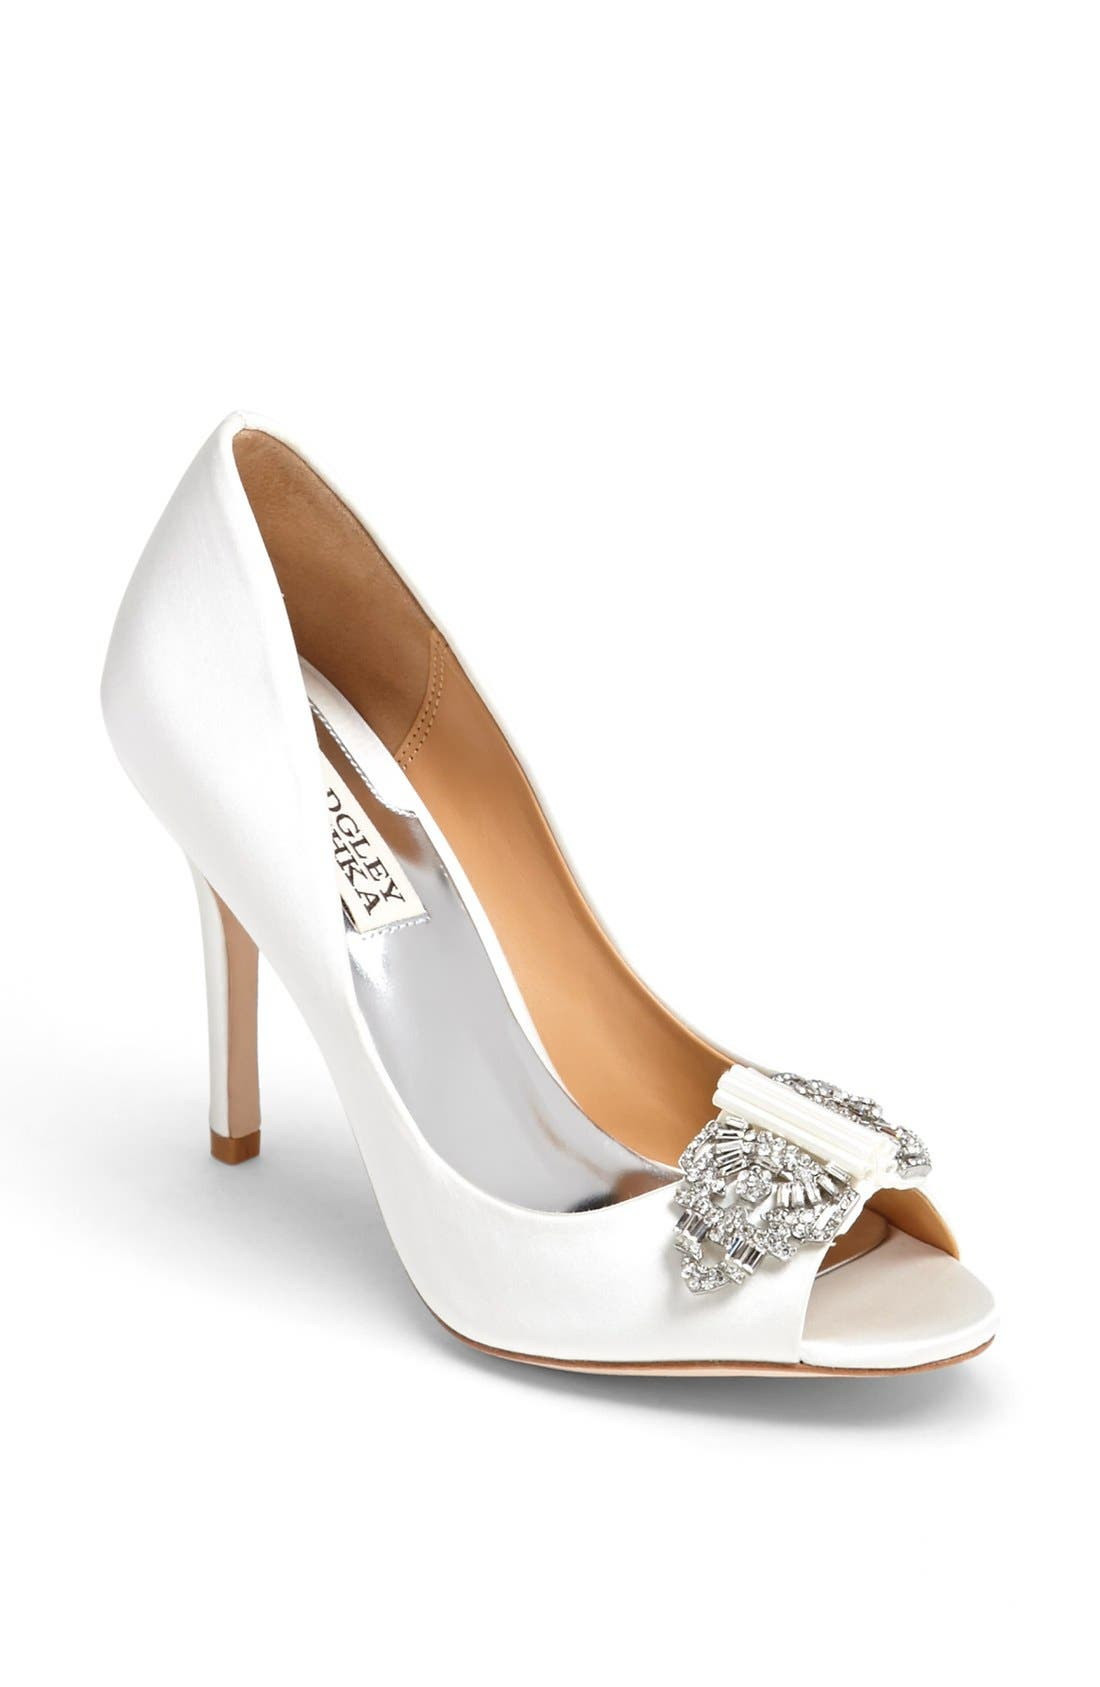 Alternate Image 1 Selected - Badgley Mischka 'Davida' Pump